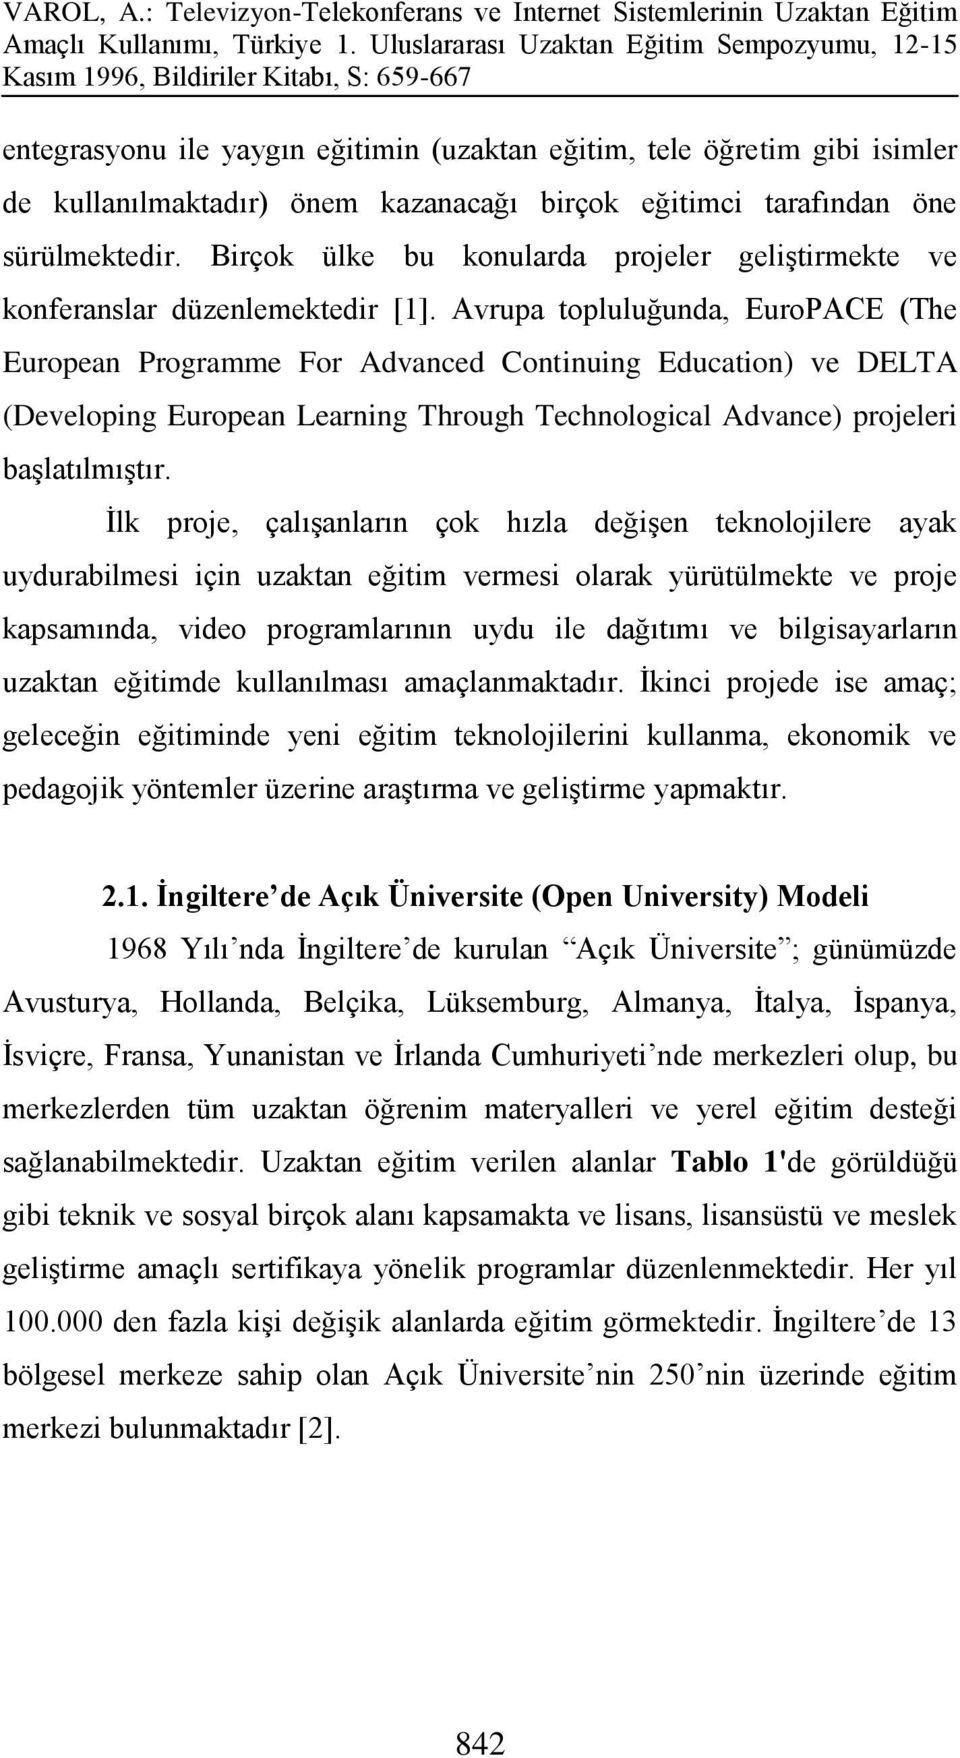 Avrupa topluluğunda, EuroPACE (The European Programme For Advanced Continuing Education) ve DELTA (Developing European Learning Through Technological Advance) projeleri başlatılmıştır.